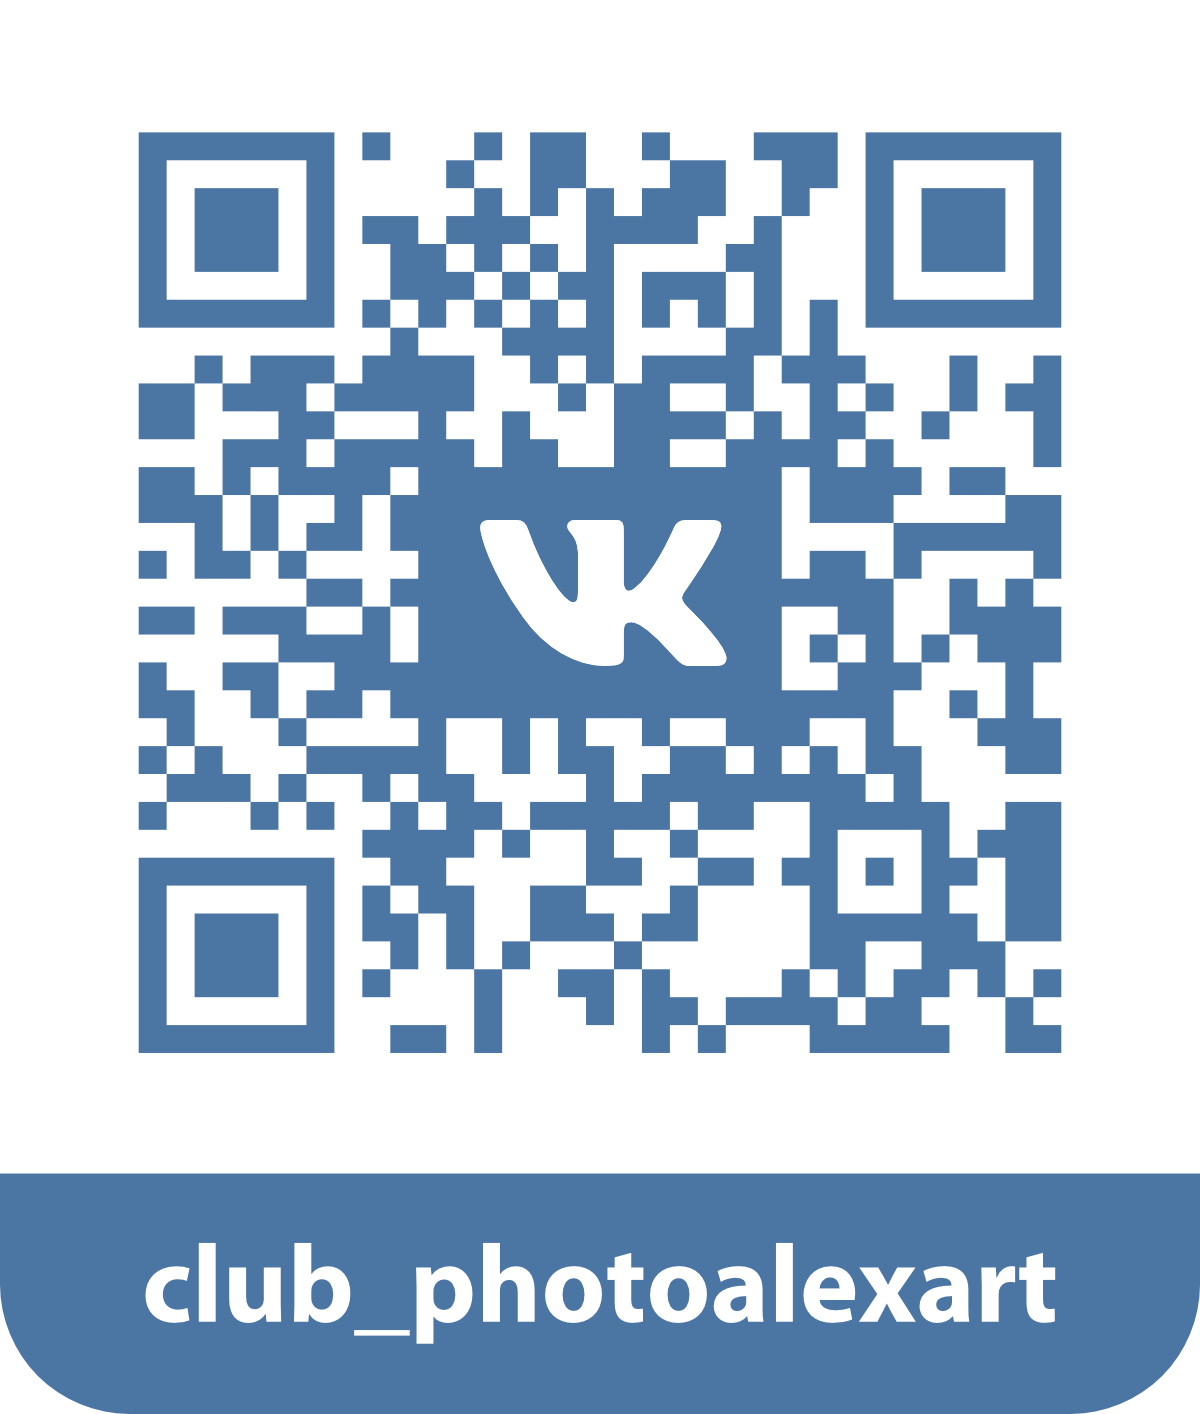 https://vk.com/club_photoalexart